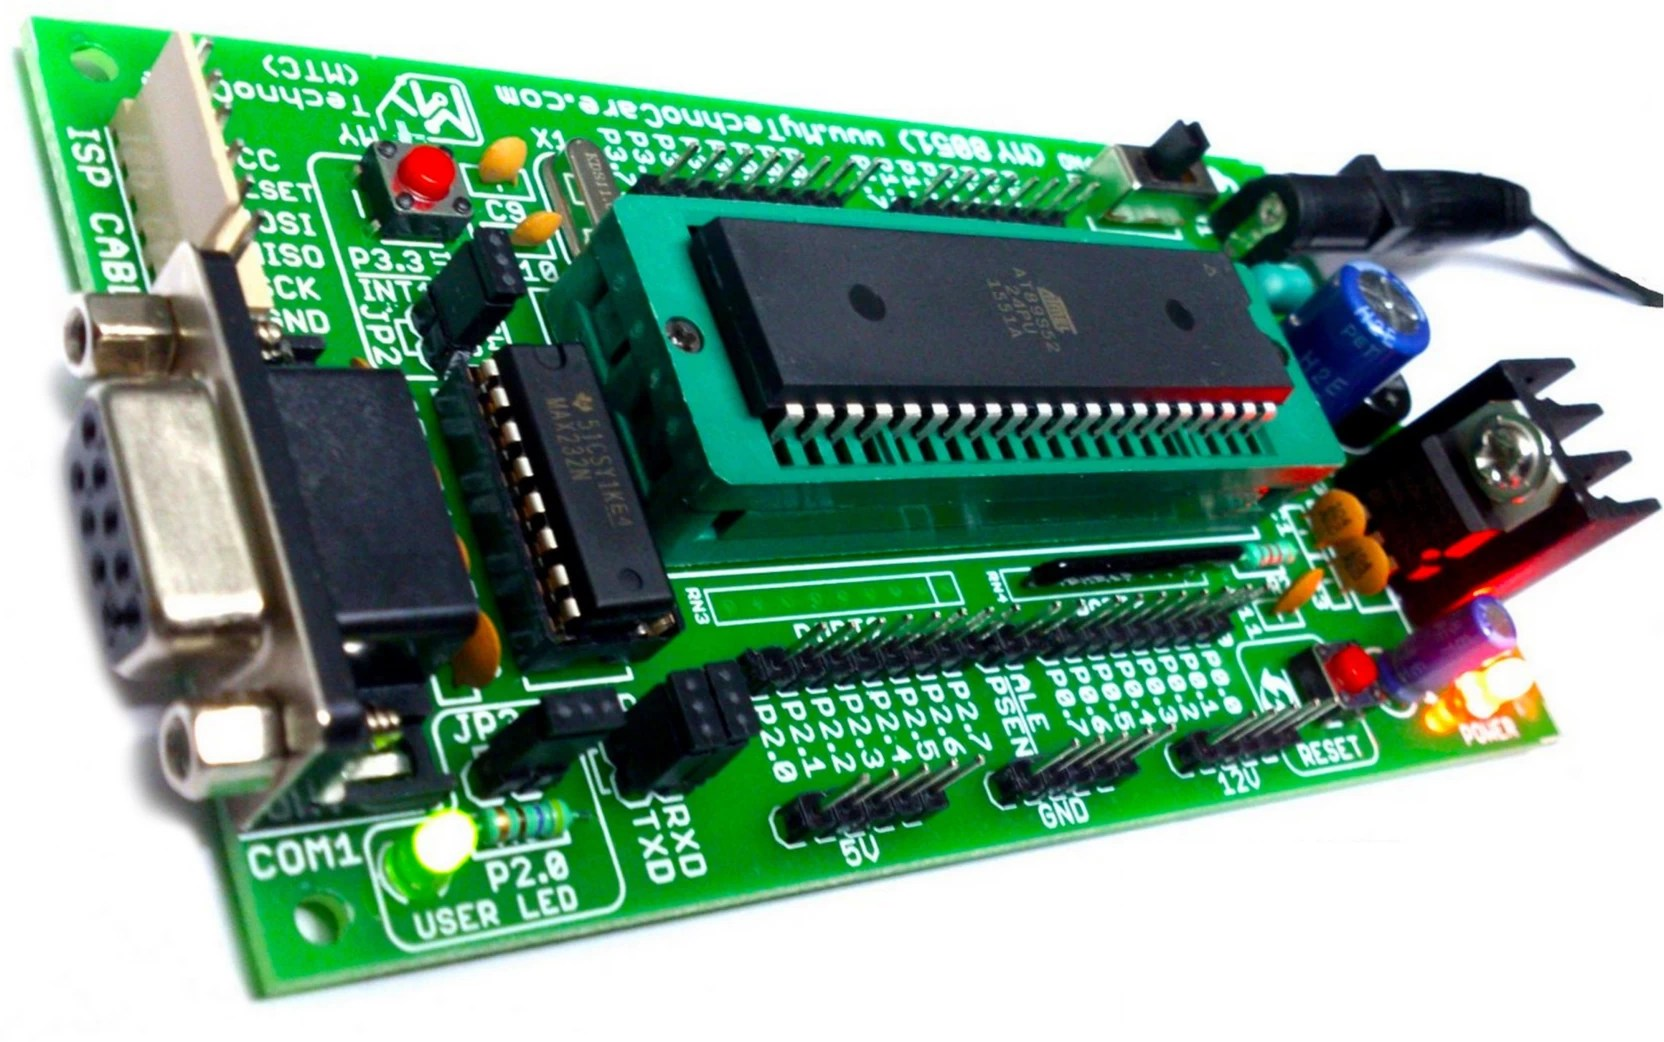 medium resolution of my technocare 8051 development board zif socket max232 at89s52 microcontroller ic project evaluation kit support atmel at89s51 xx 89cxx 89v51rd2